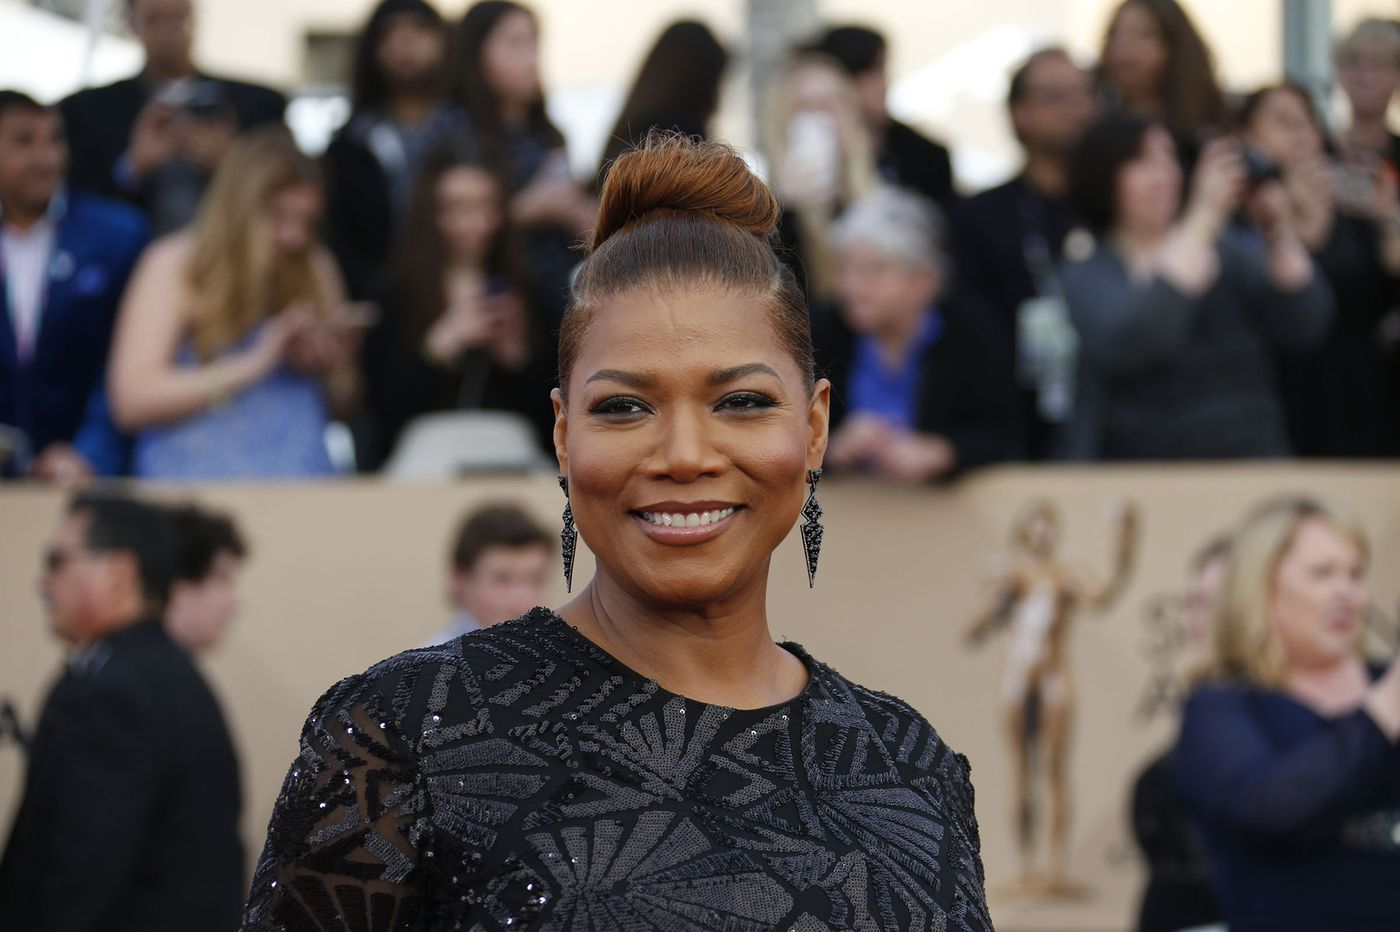 Queen Latifah to receive 2018 Marian Anderson Award